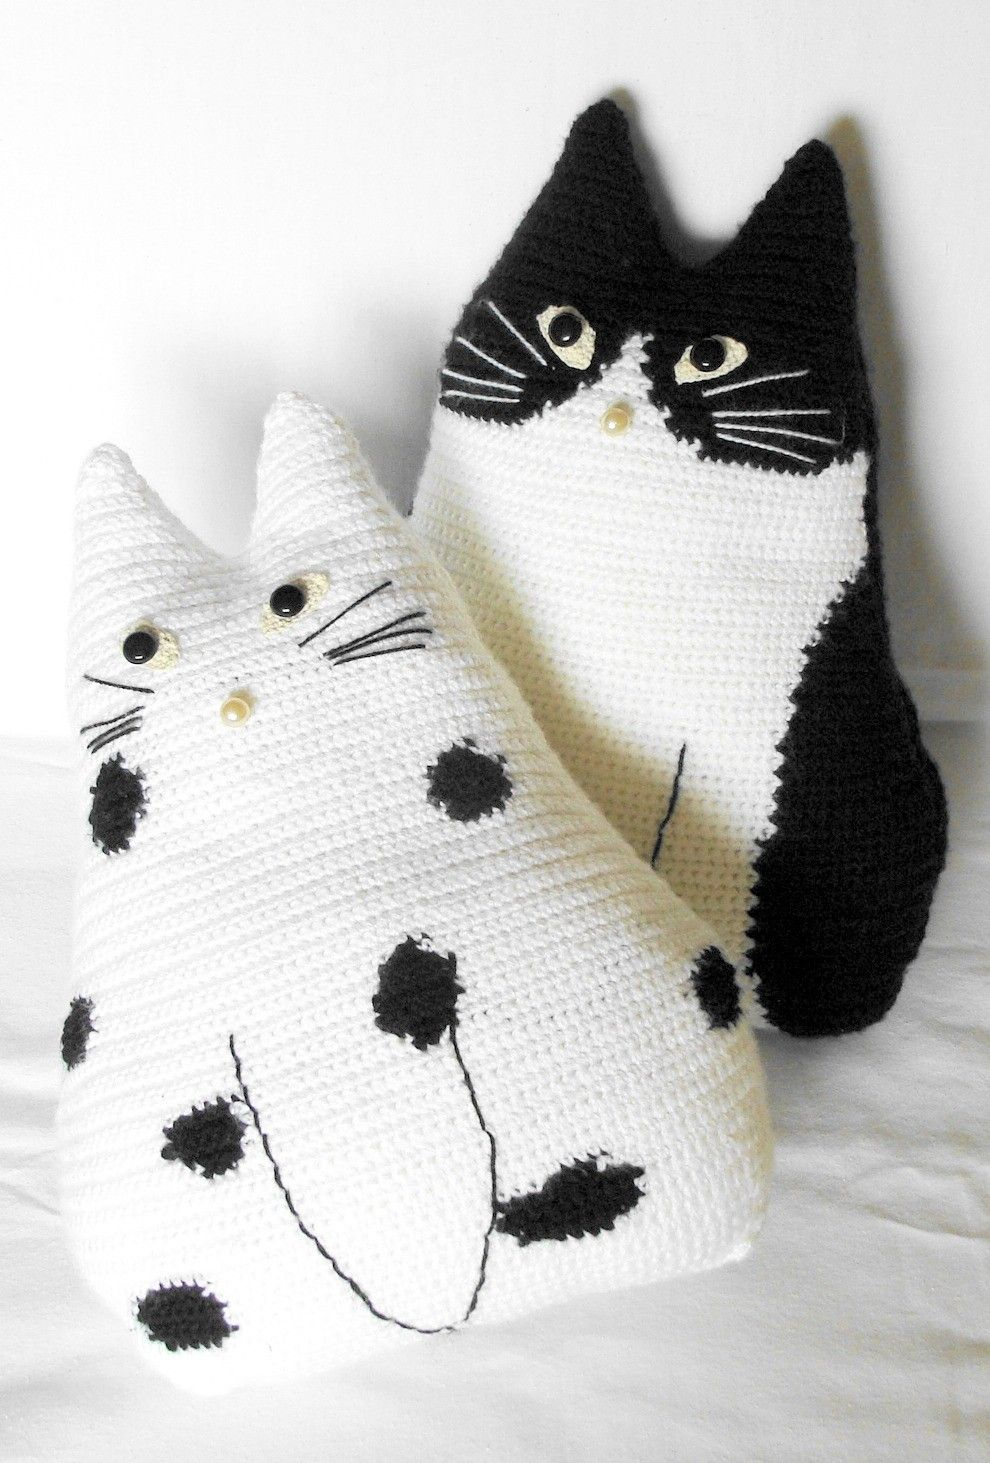 Crochet cat toy pillows set black and white cat stuffed cat pillow crochet cat toy pillows set black and white cat stuffed cat pillow pet lover gift cat toy pillow animal pillow primitive toy cat crochet bankloansurffo Choice Image